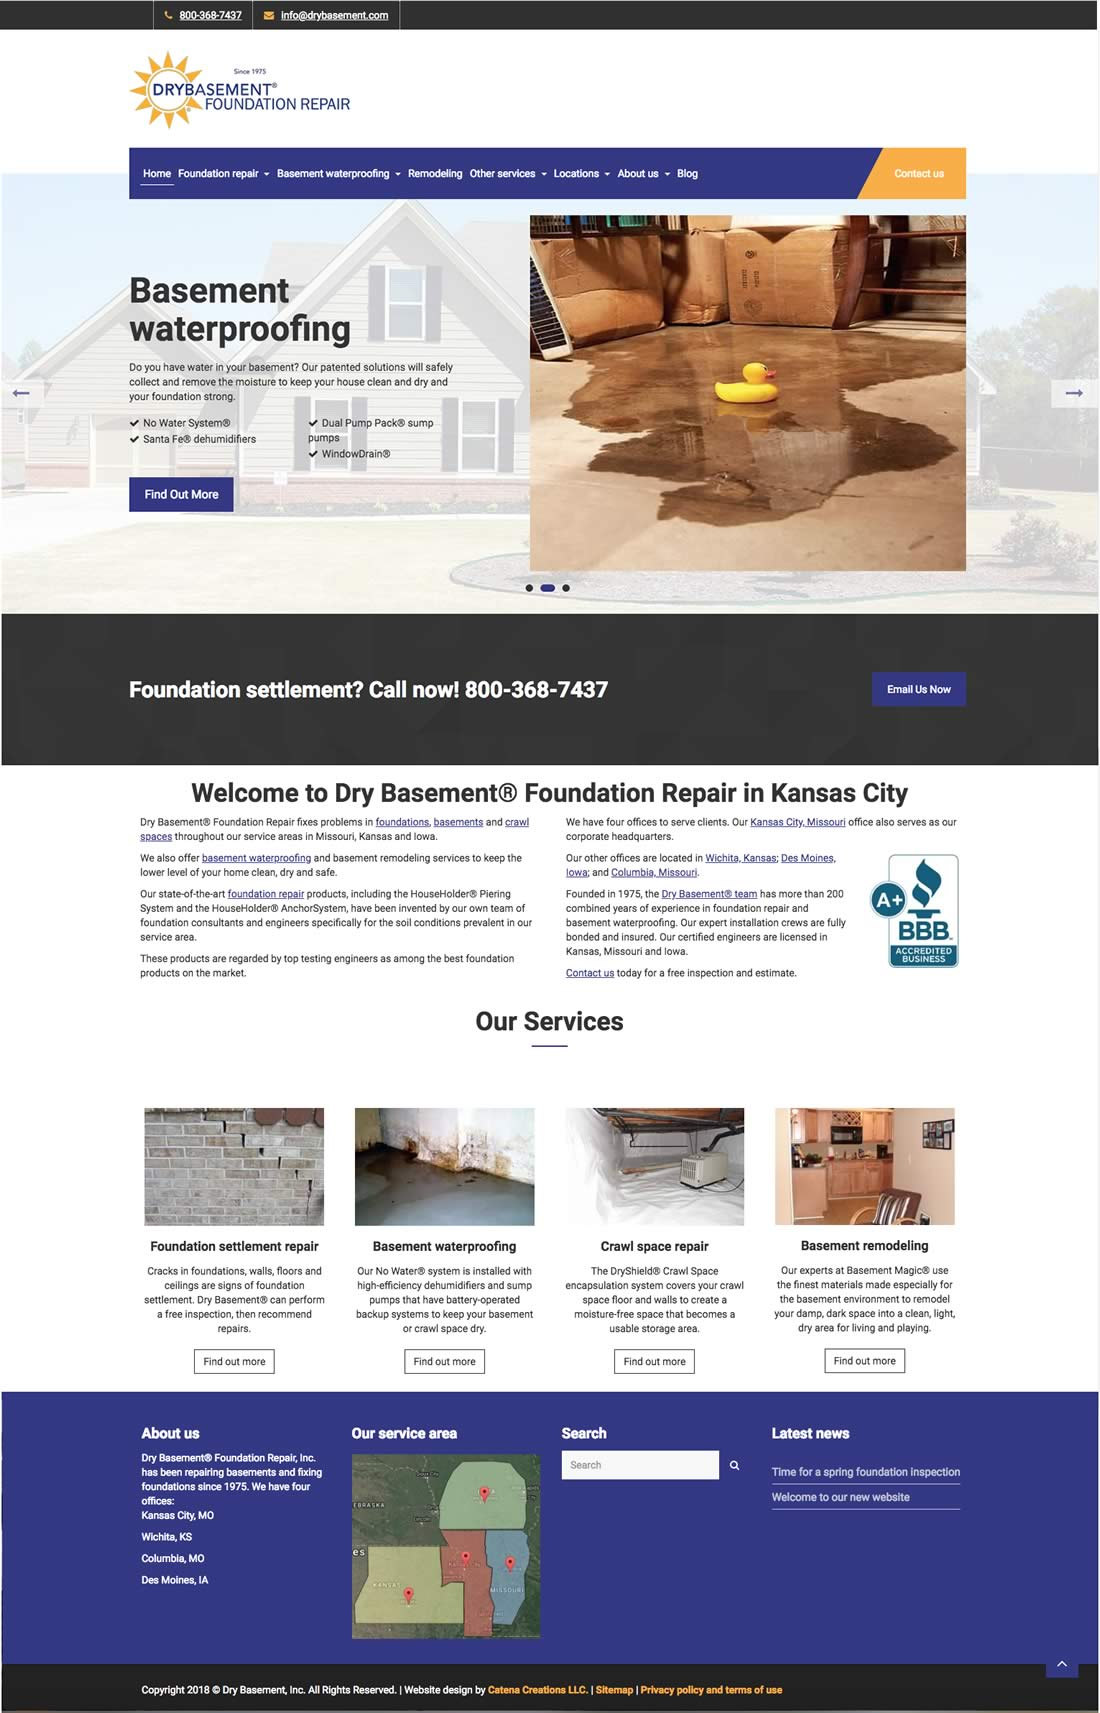 Dry Basement Foundation Repair website redesign